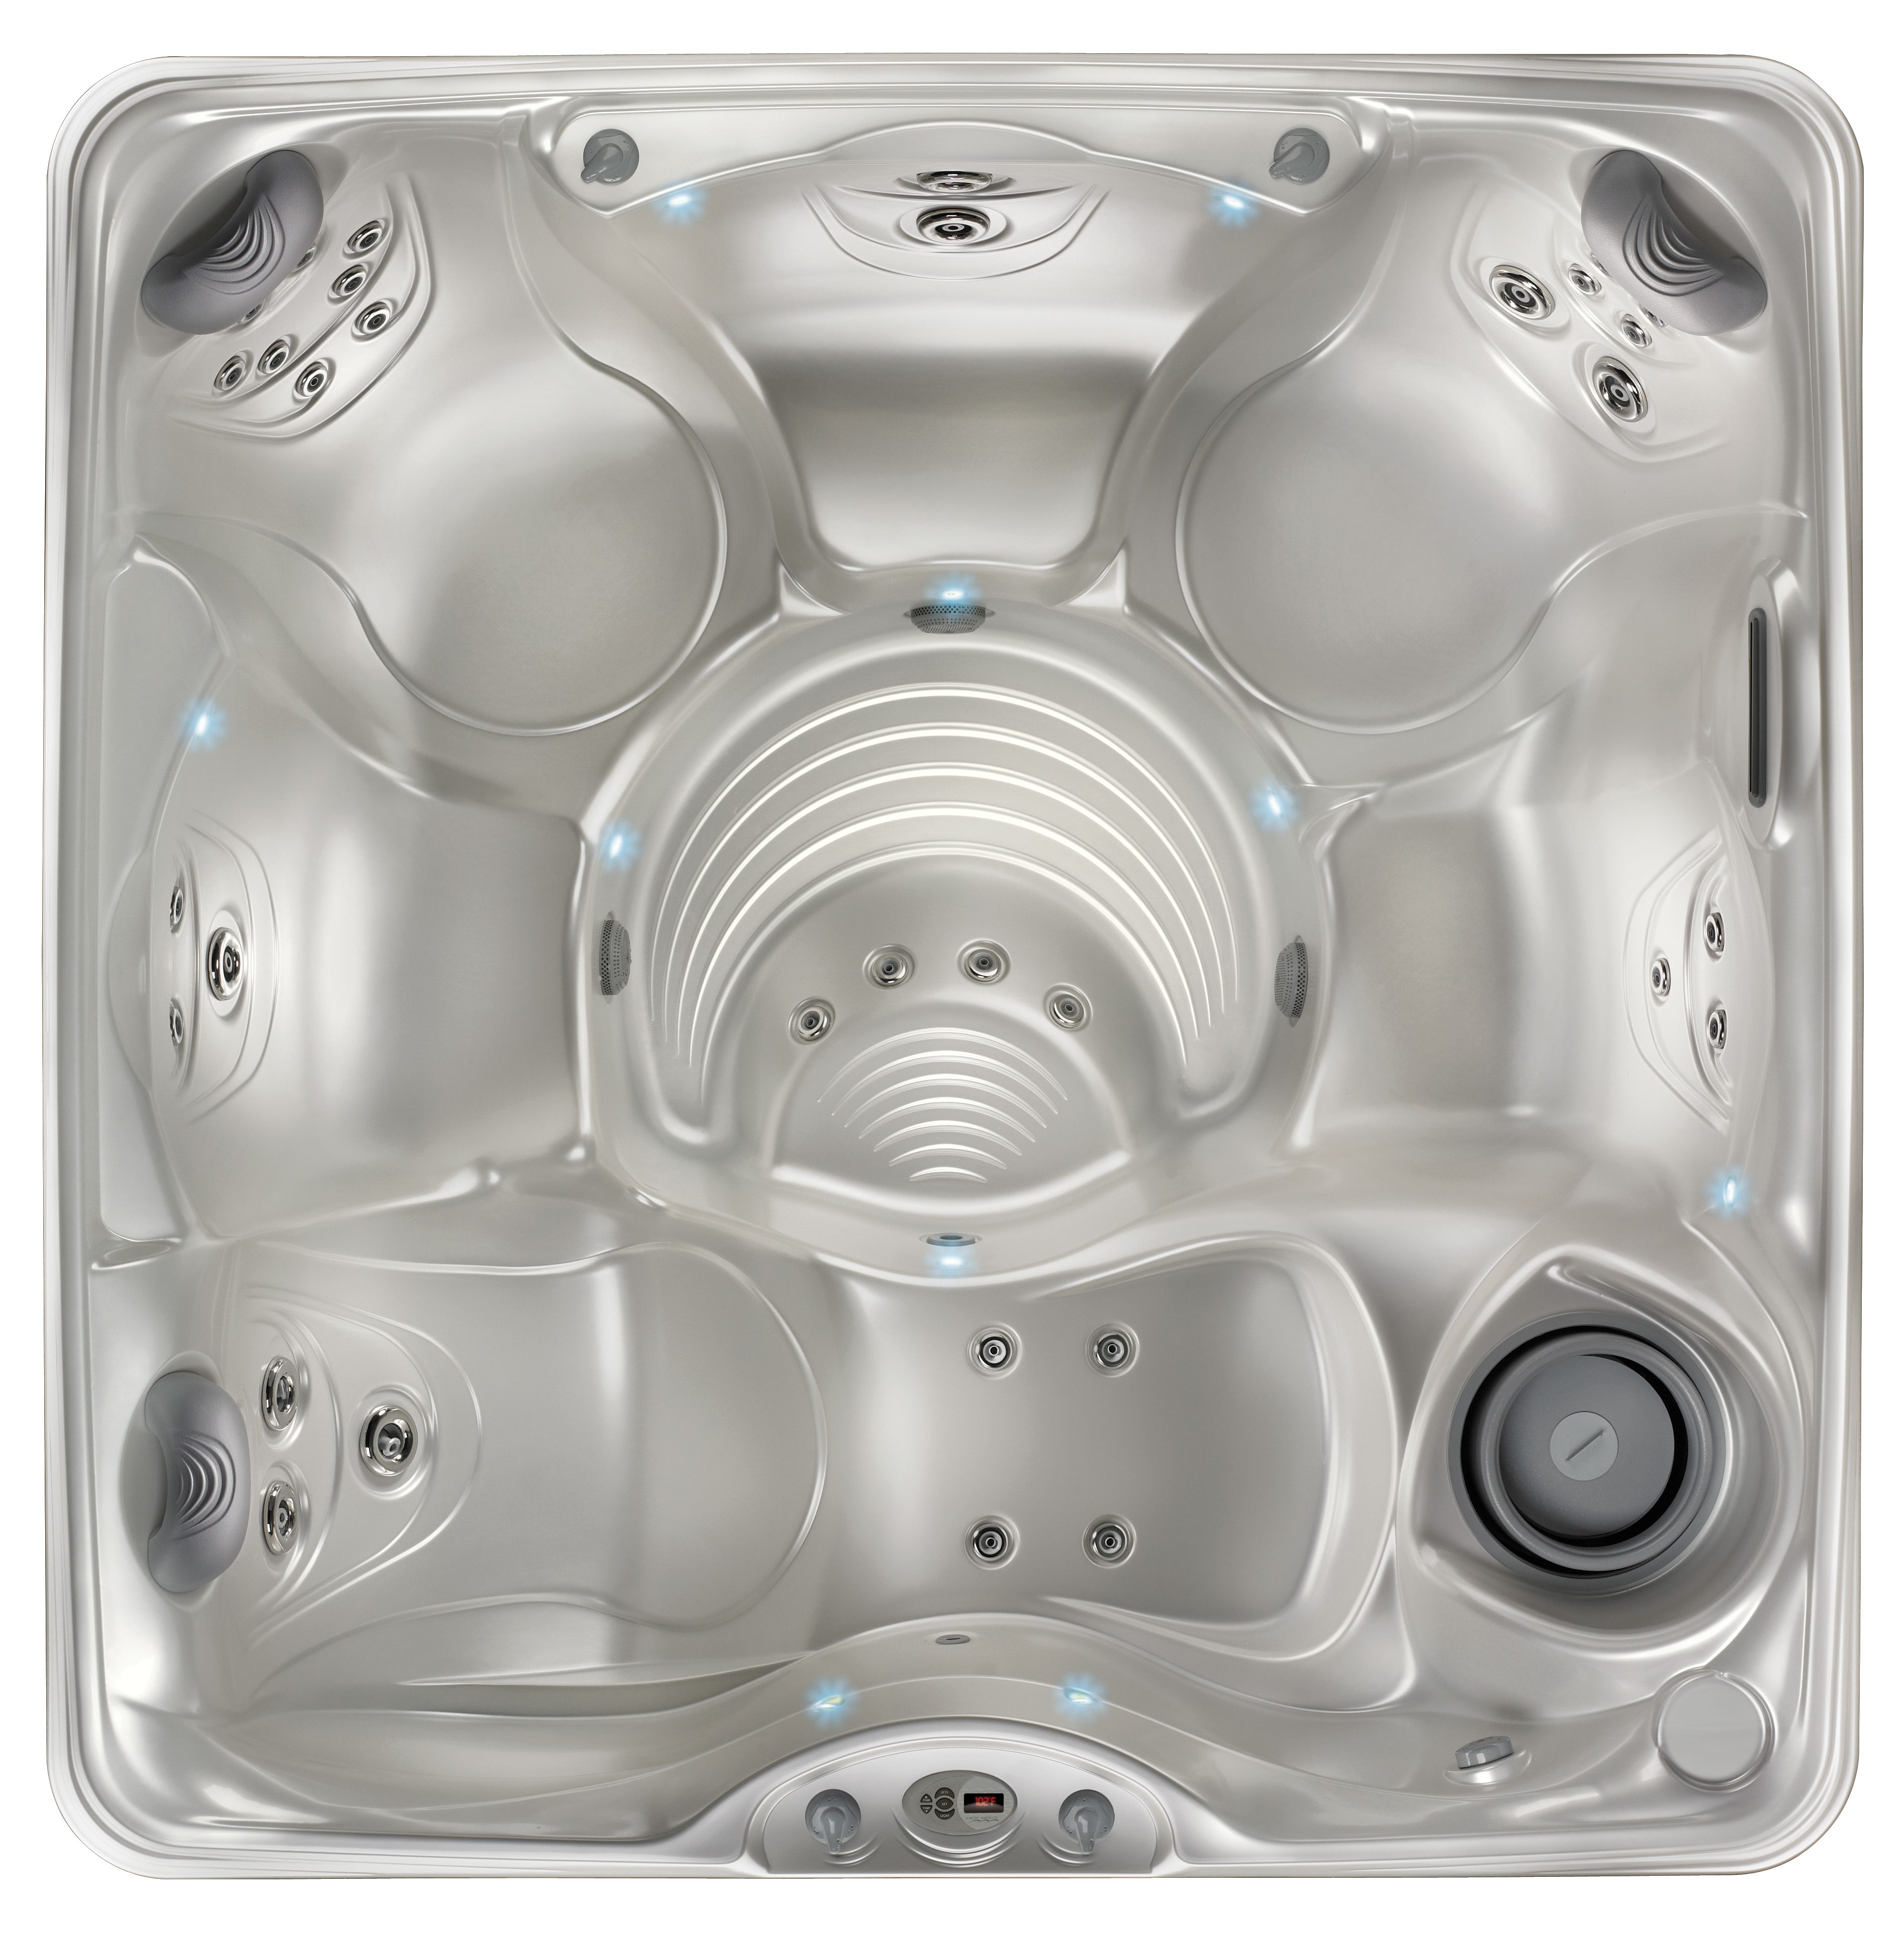 The Ultimate Guide To Understanding Hot Tub Chemicals Hot Tub